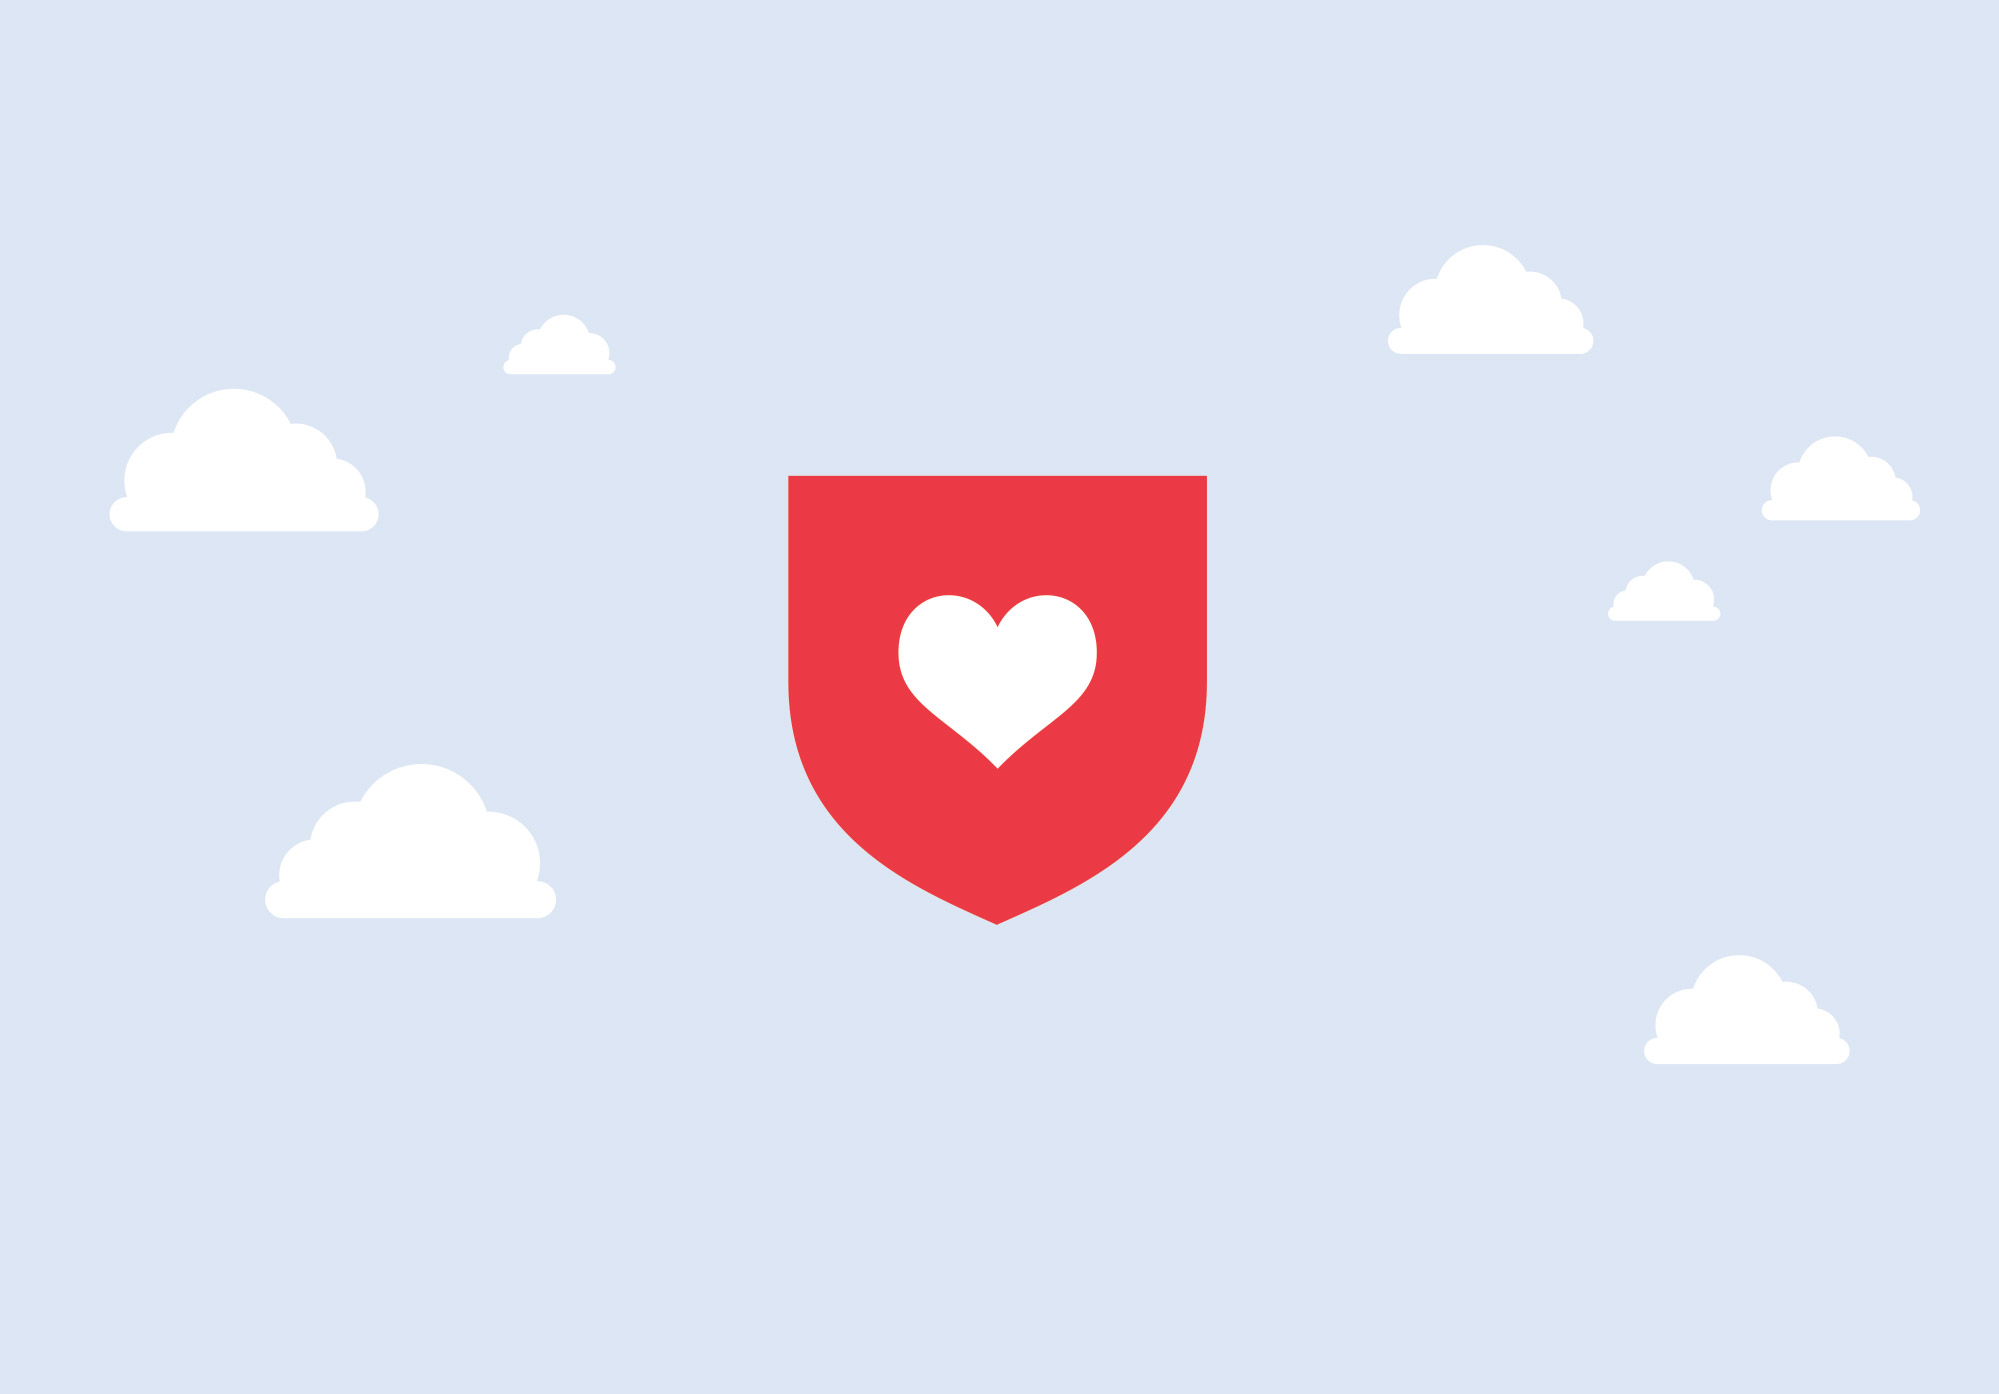 a heart in a red shield against a background of clouds